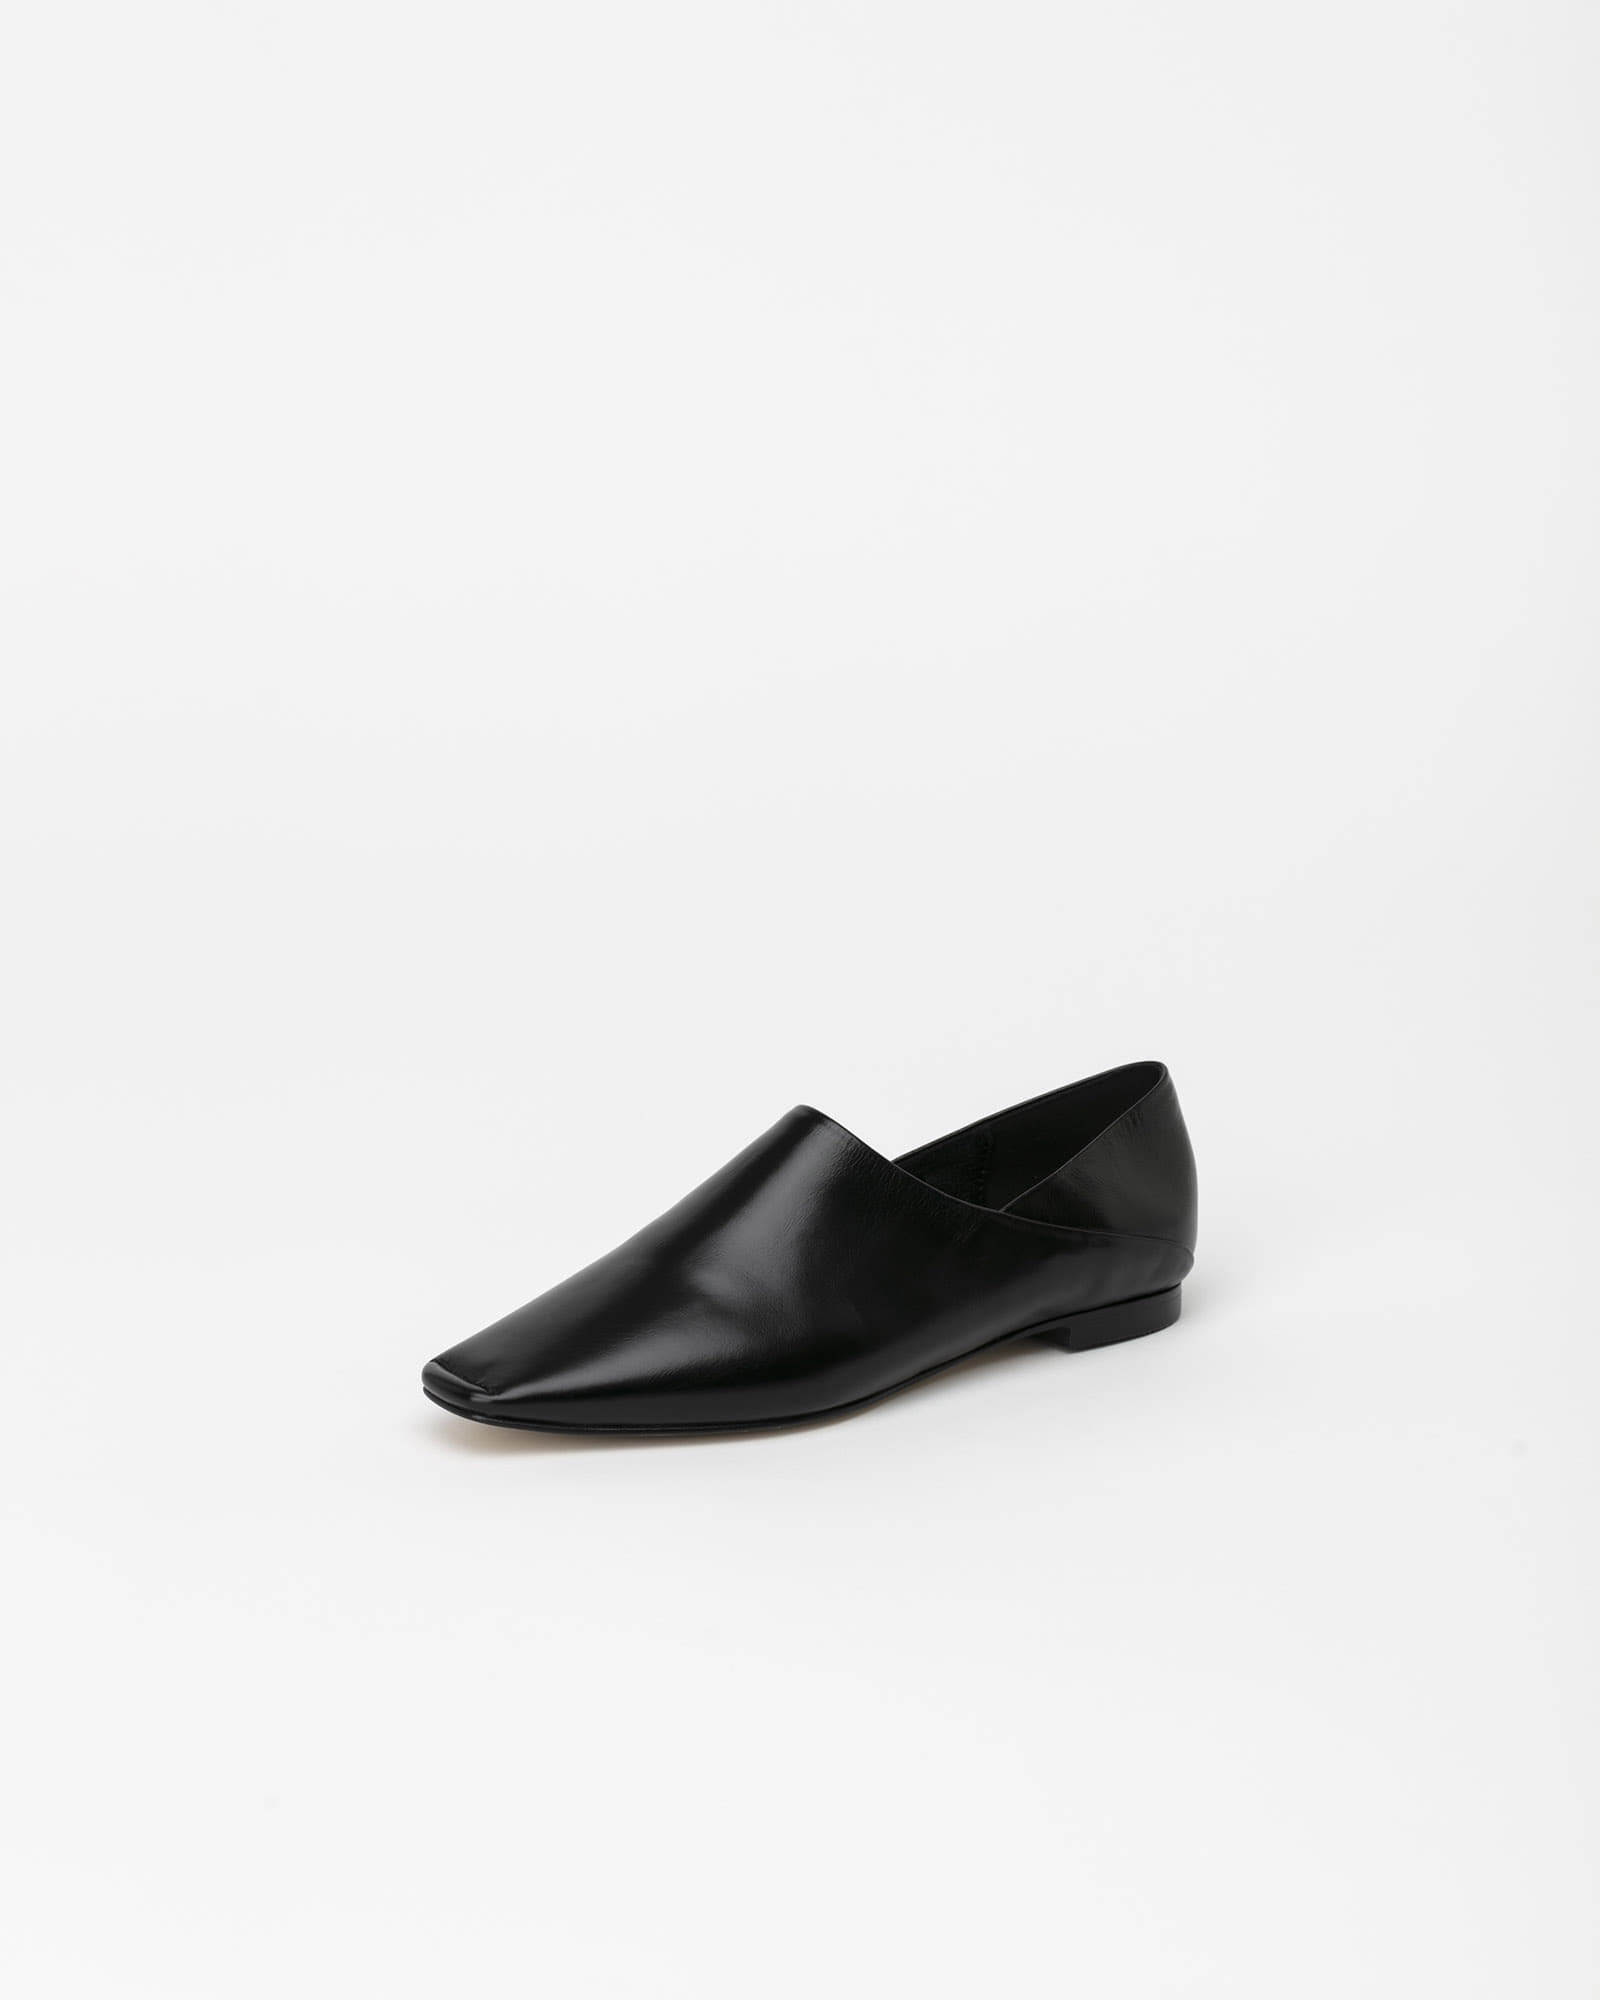 Vessel Flat Shoes in Textured Black